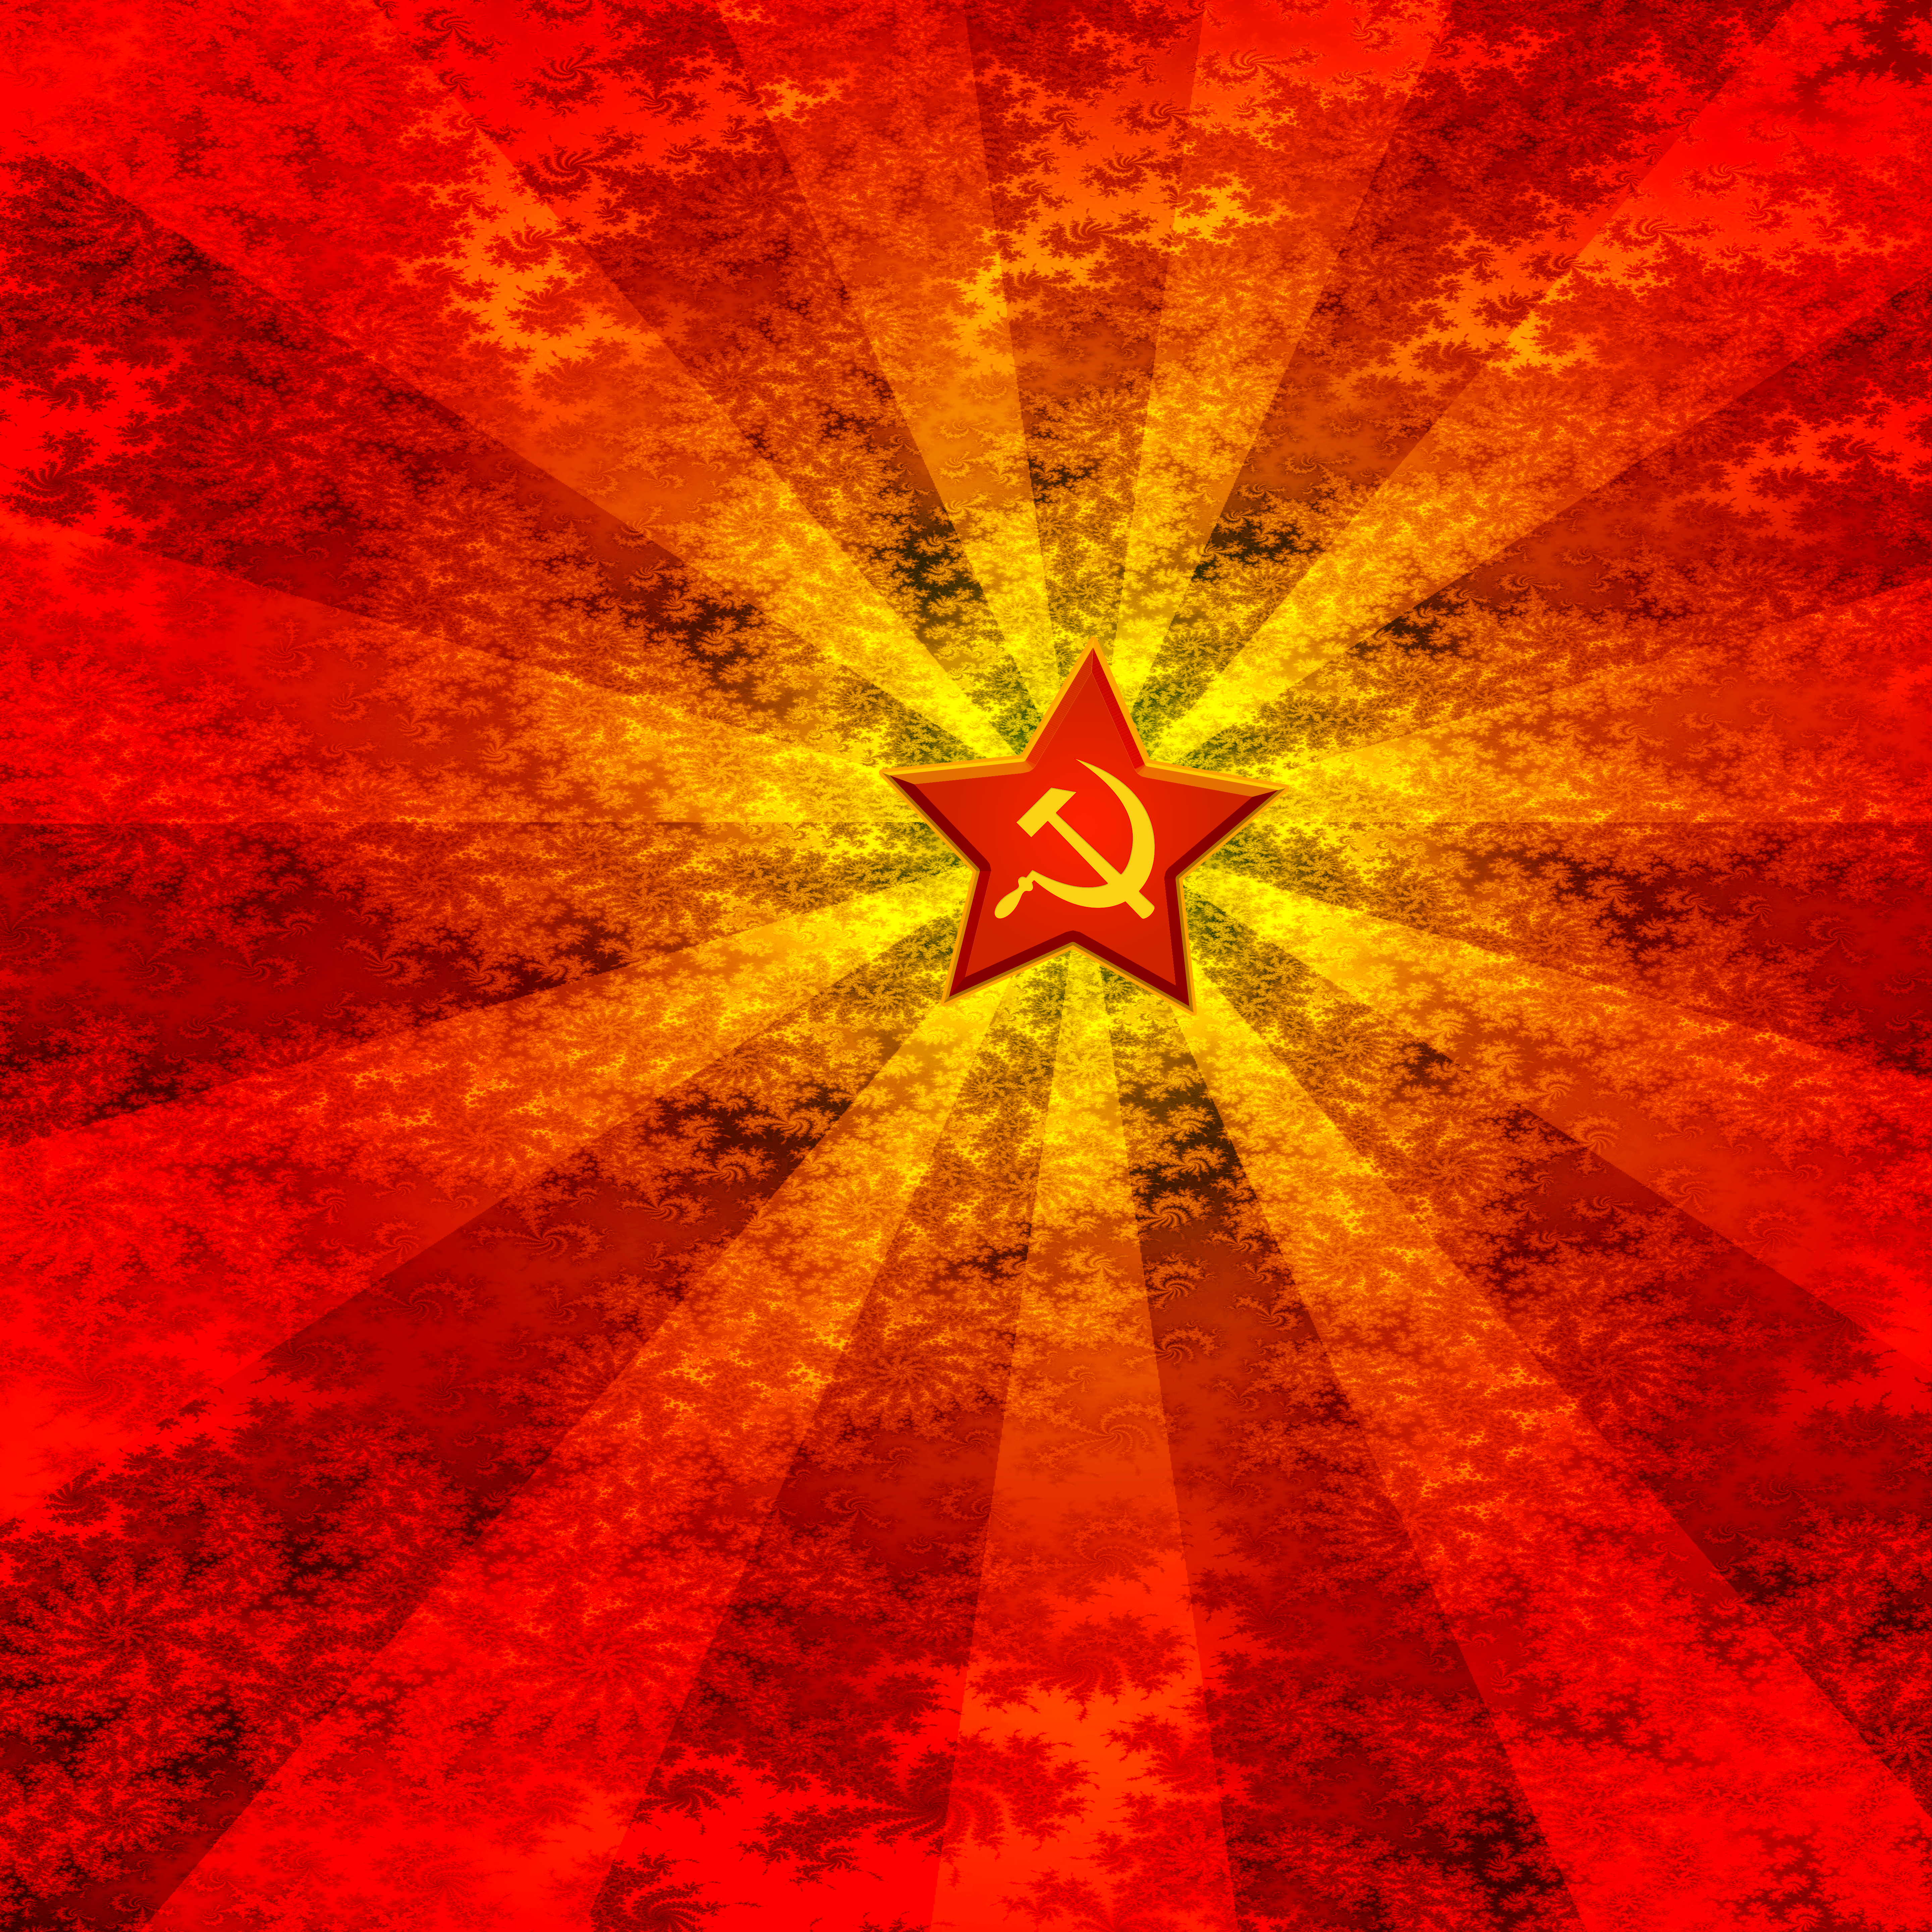 Interesting Communism HDQ Images Collection: 27276682, 5760x5760